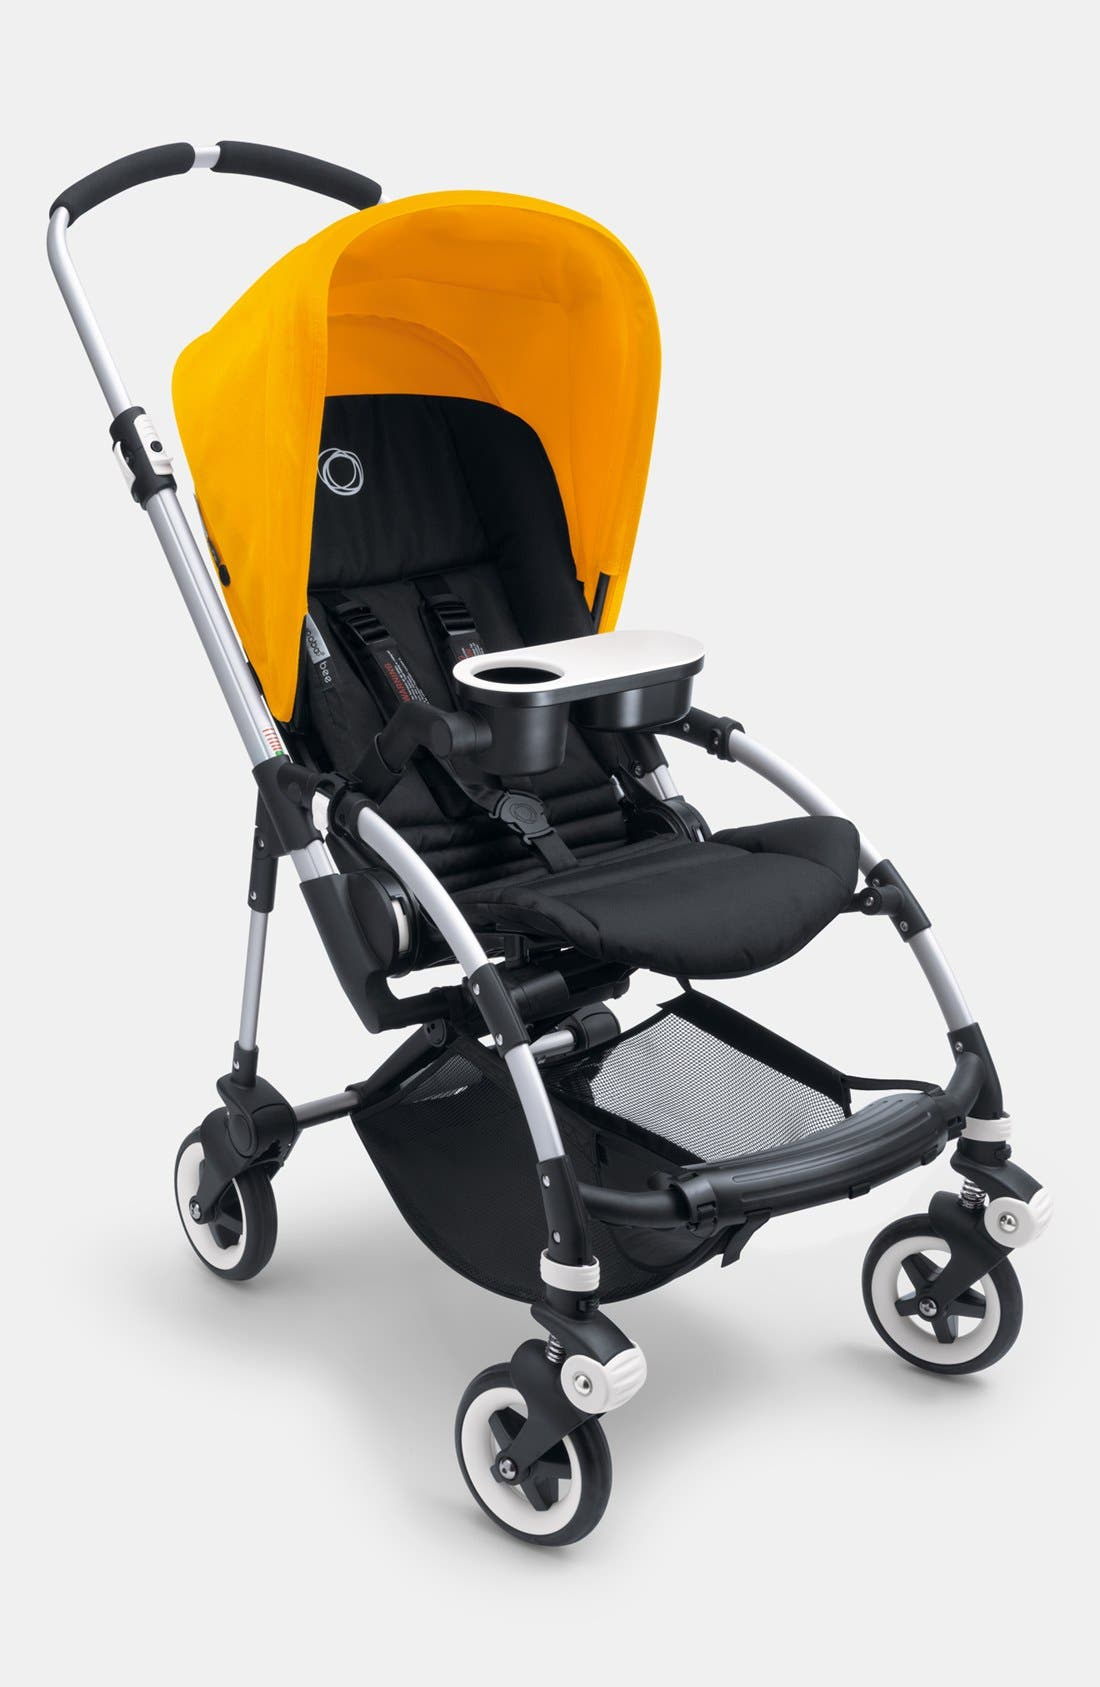 Bugaboo Baby Gear & Essentials: Strollers, Diaper Bags & Toys ...